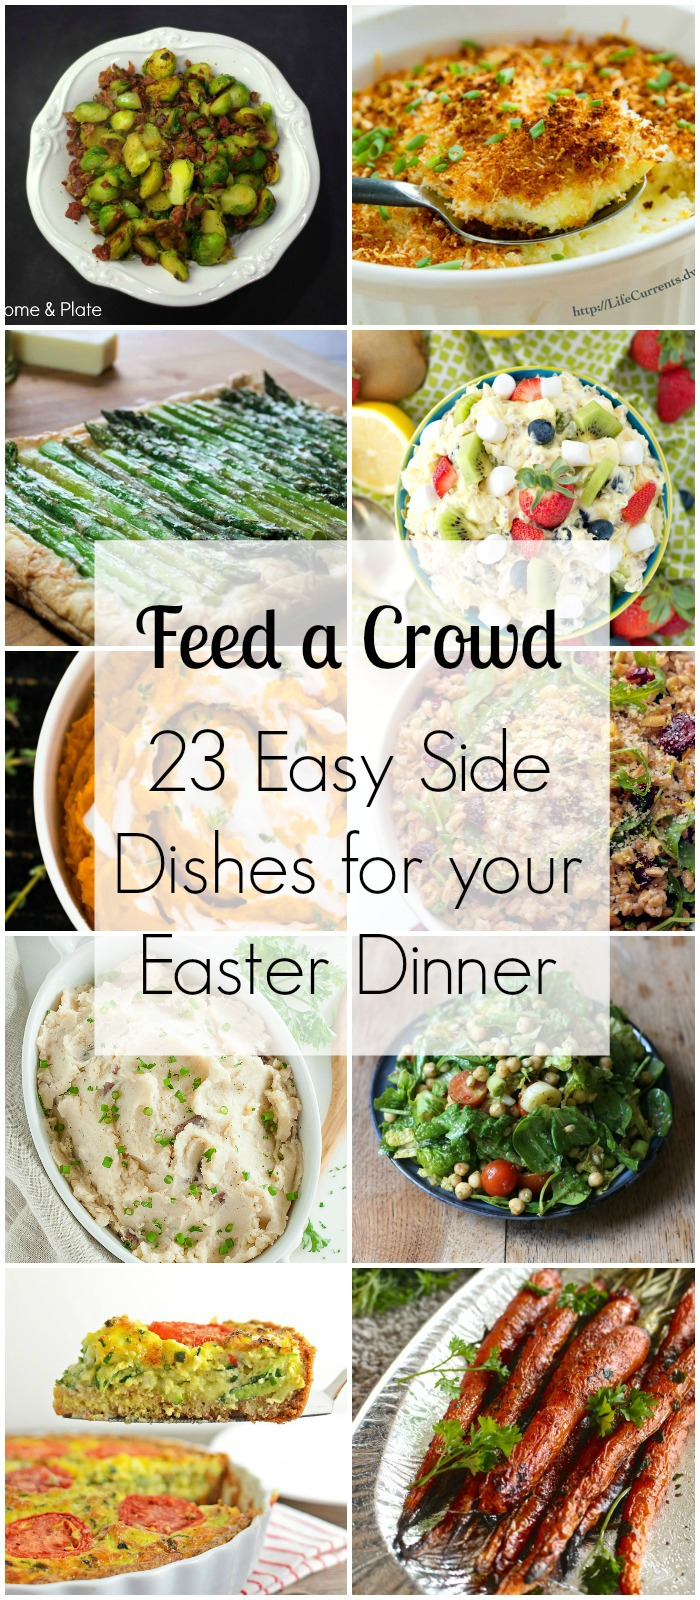 23 Easy Side Dishes for your Easter Dinner - Feed a Crowd | www.homeandplate.com | Perfect sides for your Easter Dinner.